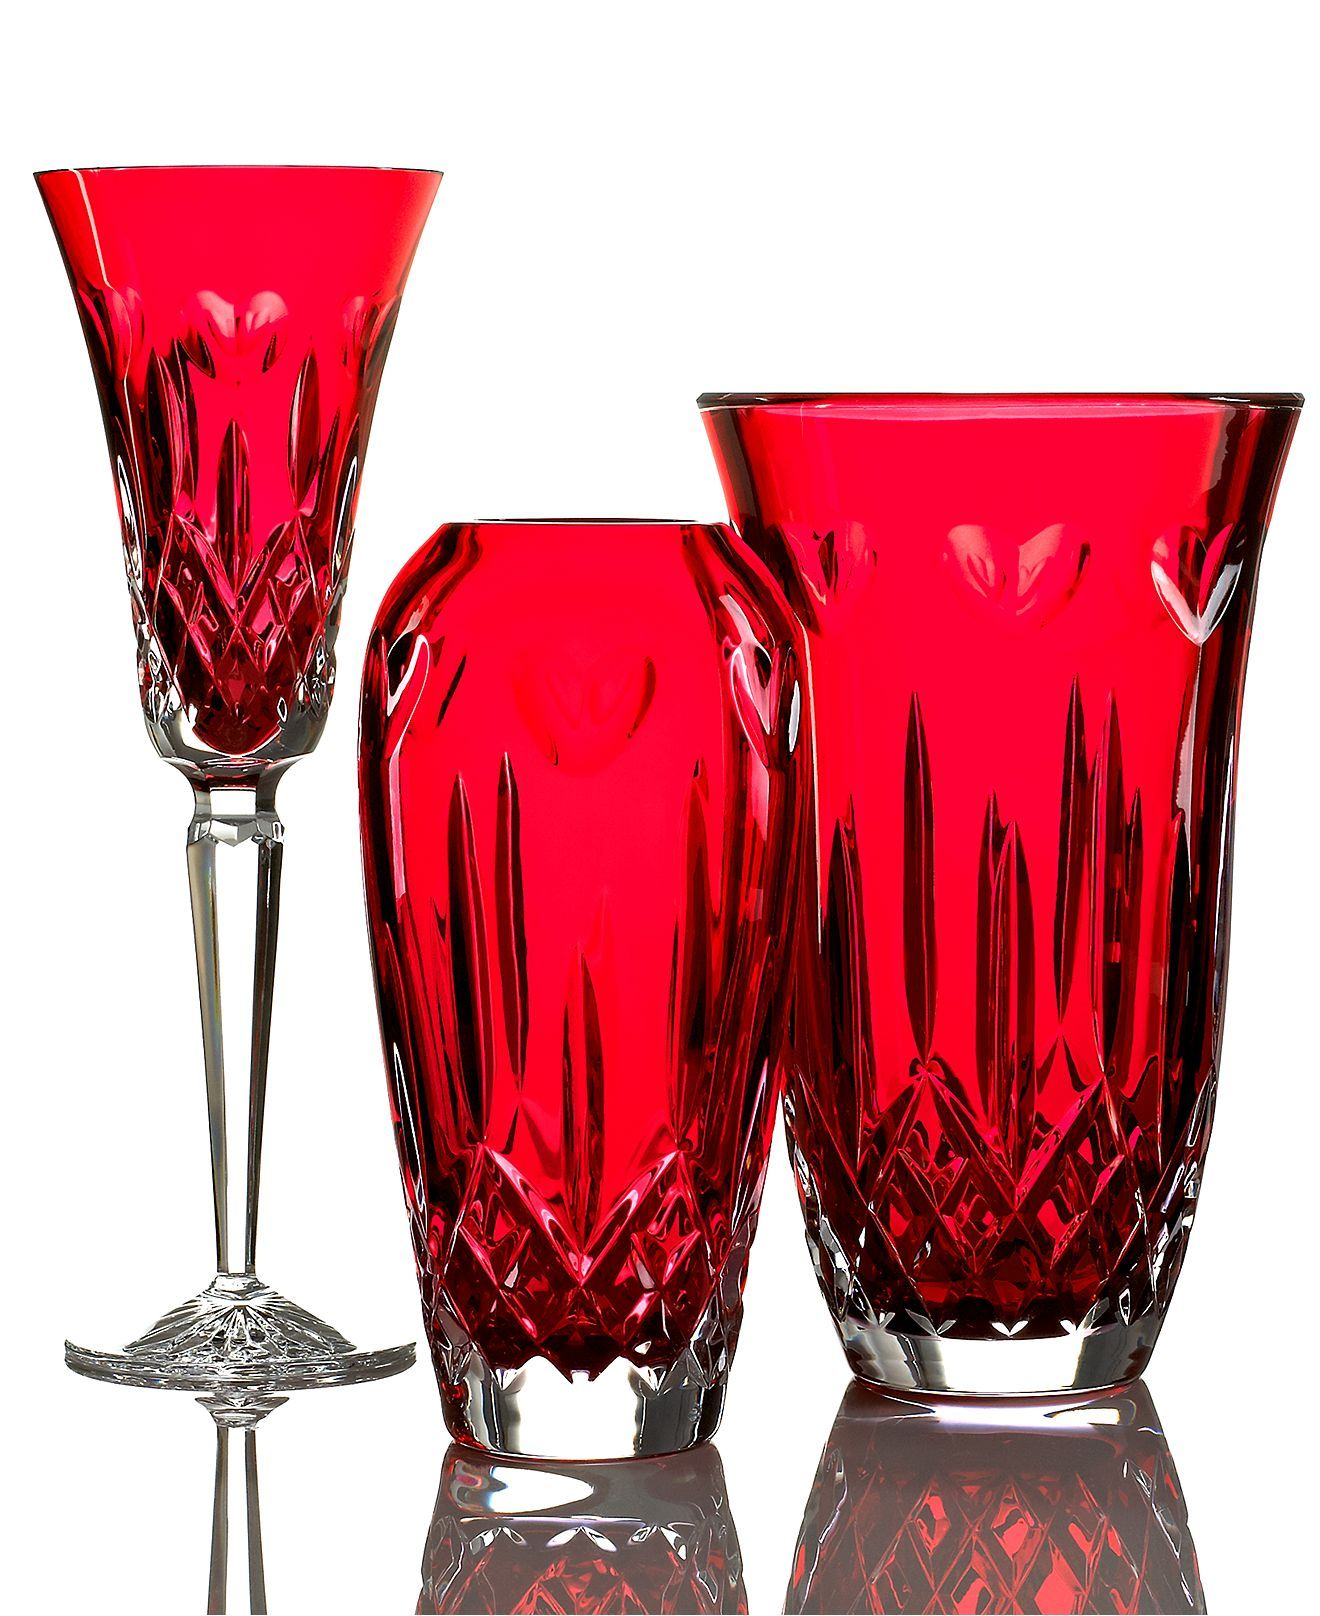 Pin By Vicki Hutchison Schaub On Ruby Red Glass Waterford Crystal Crystal Glassware Crystal Gifts